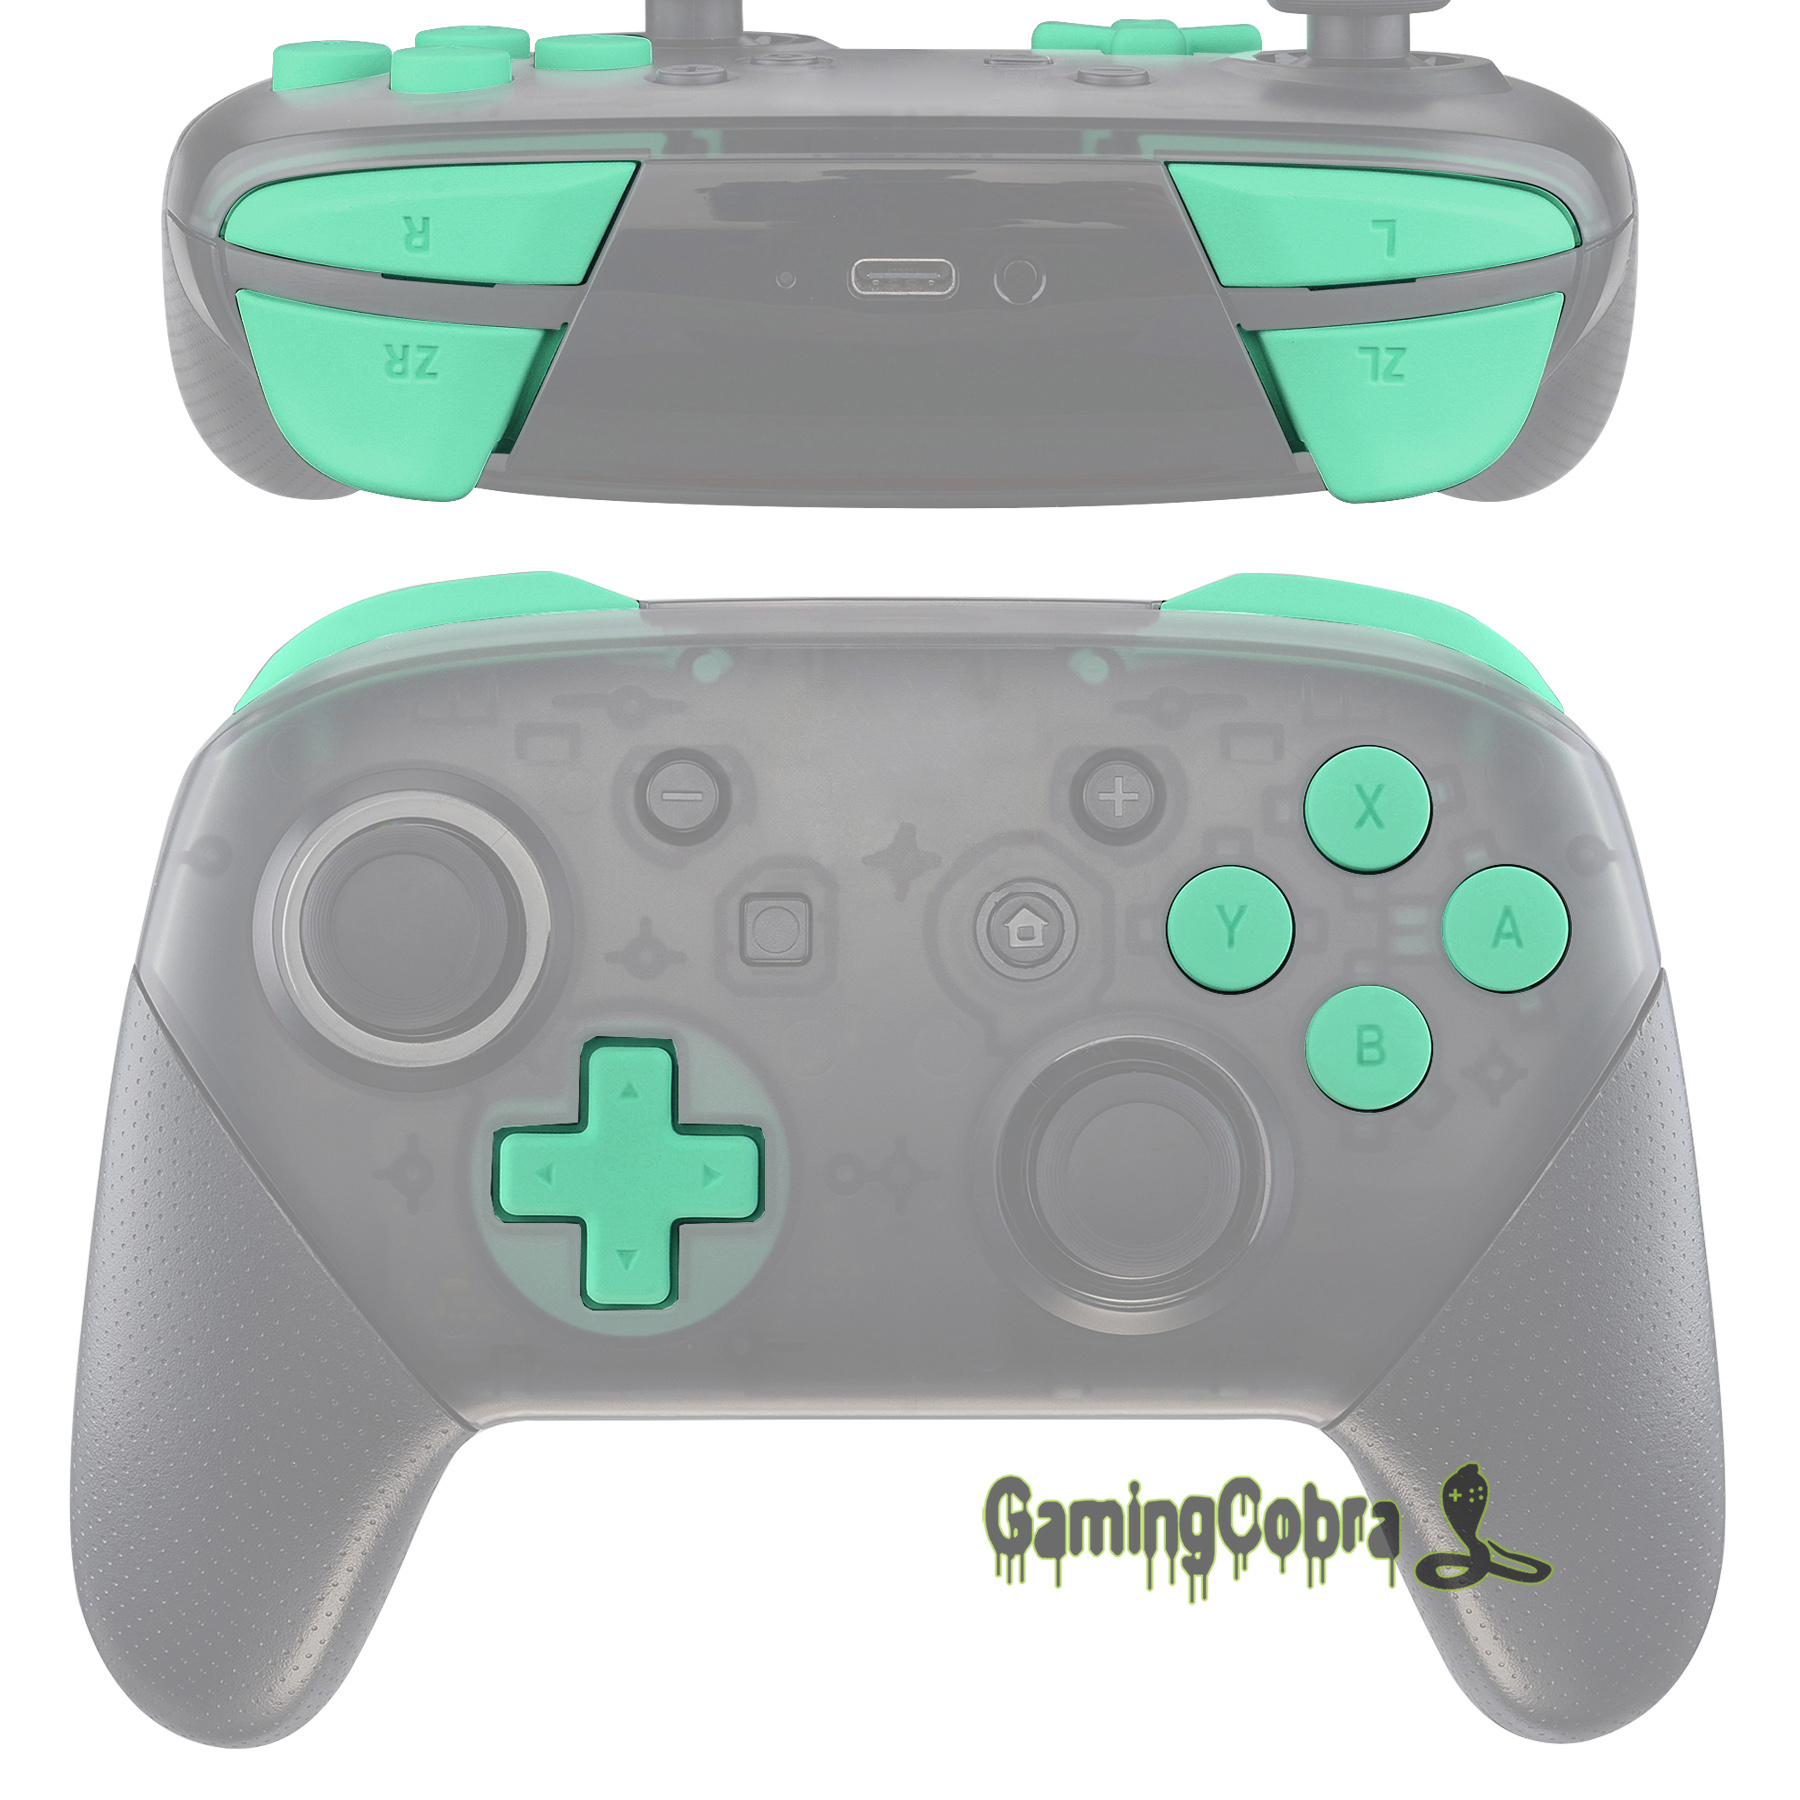 Soft Touch Mint Green Repair ABXY D-pad ZR ZL L R Keys Replacement Full Set Buttons w/ Tools for Nintendo Switch Pro Controller